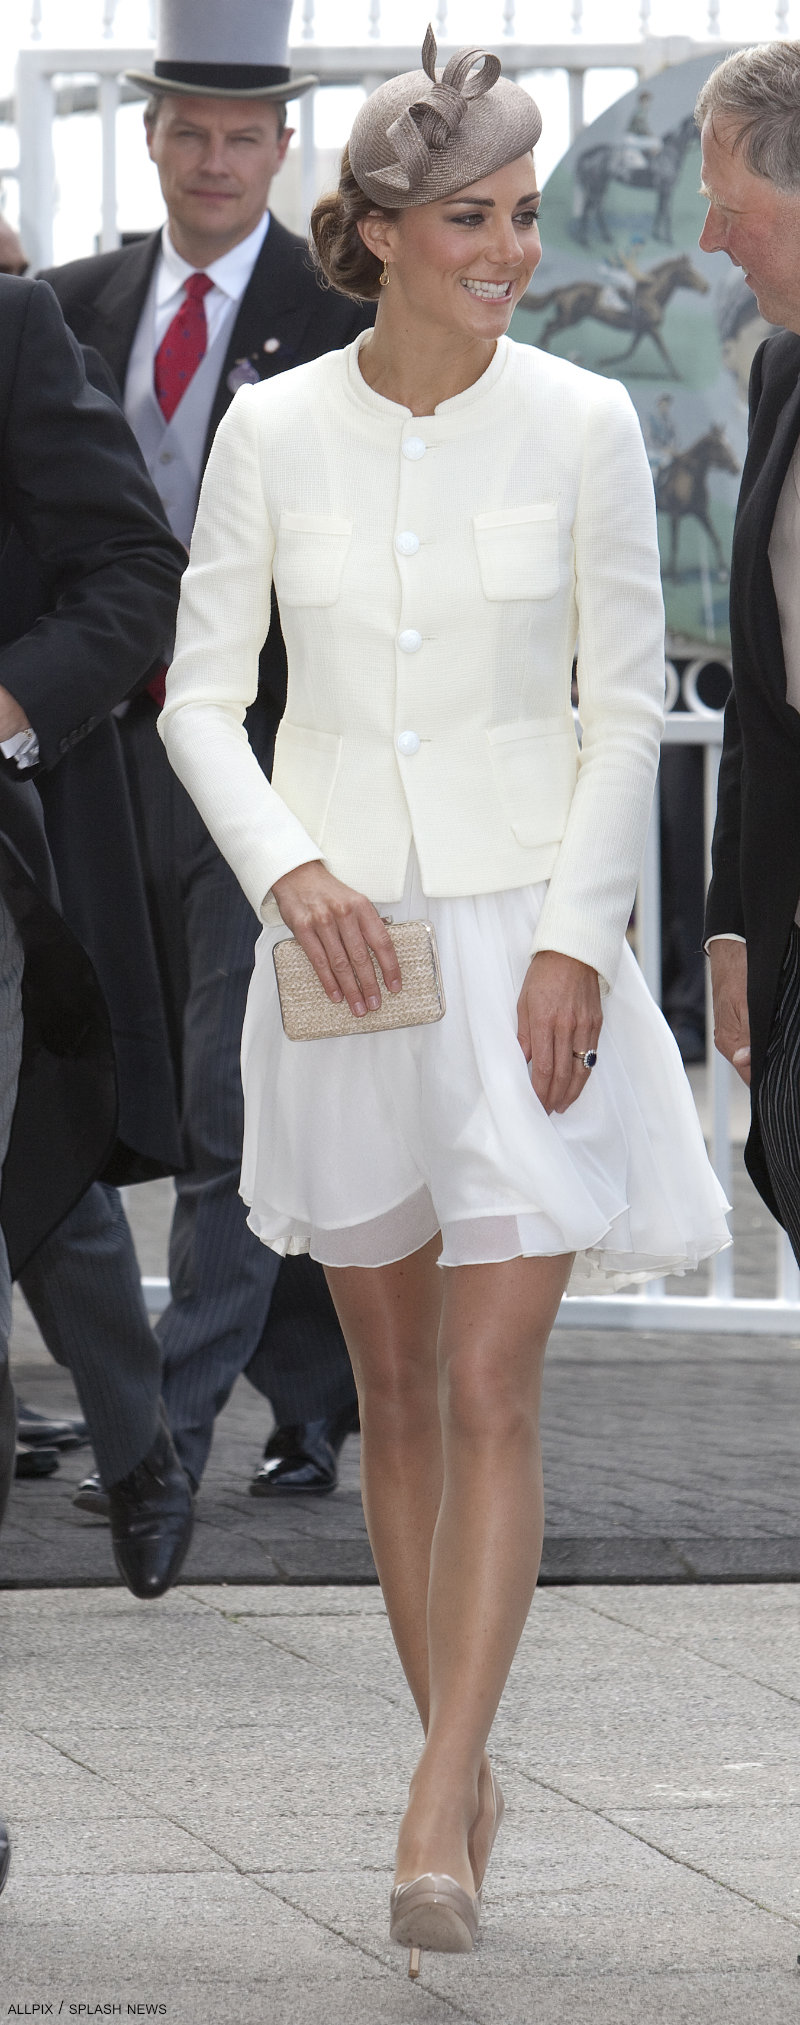 Kate in the Joseph Nessie Jacket and white Reiss Peacock dress at the Epsom Derby in 2011